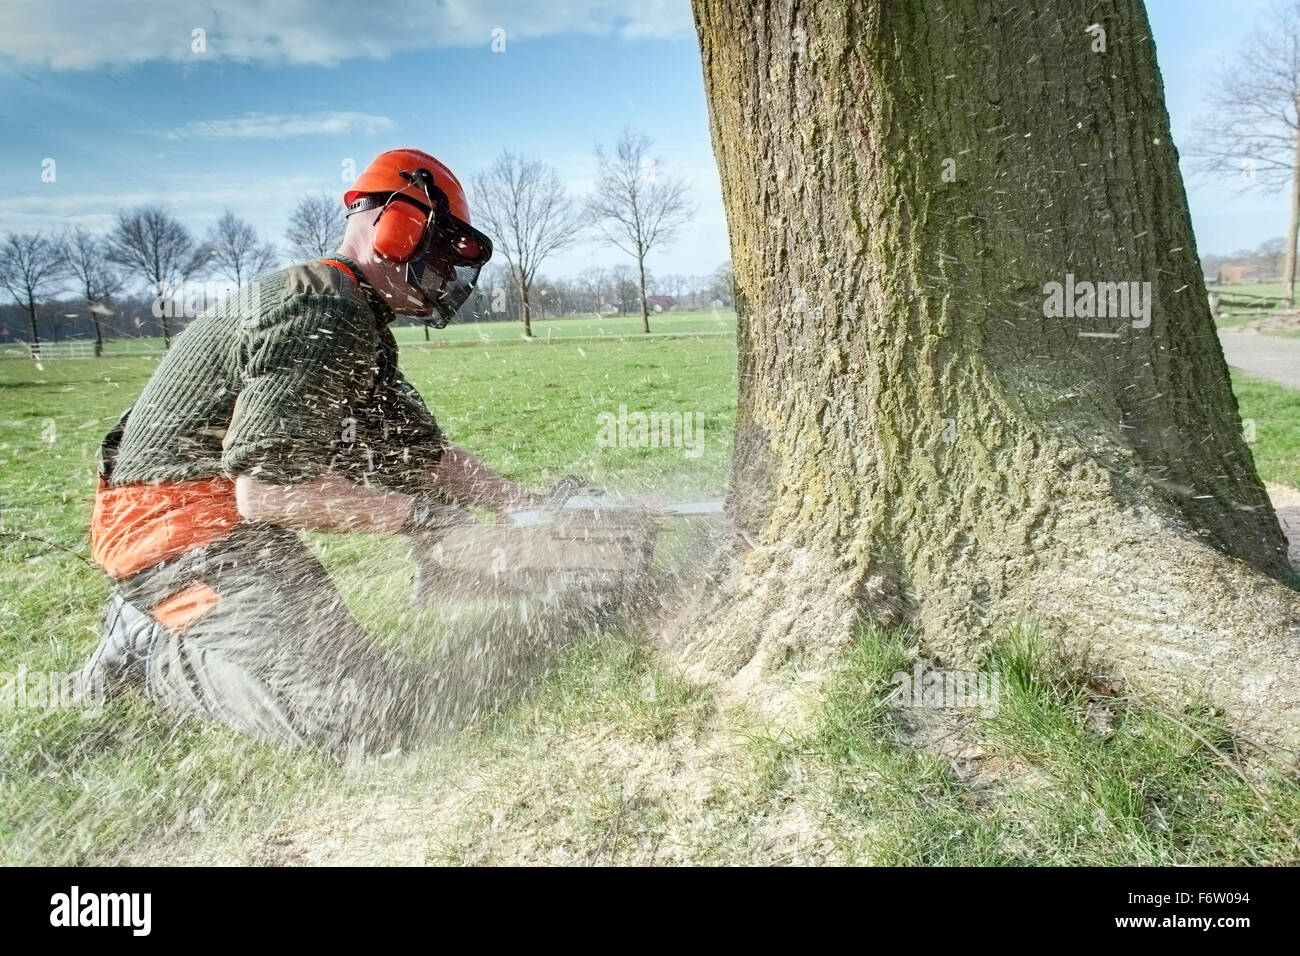 Lumberjack felling tree - Stock Image